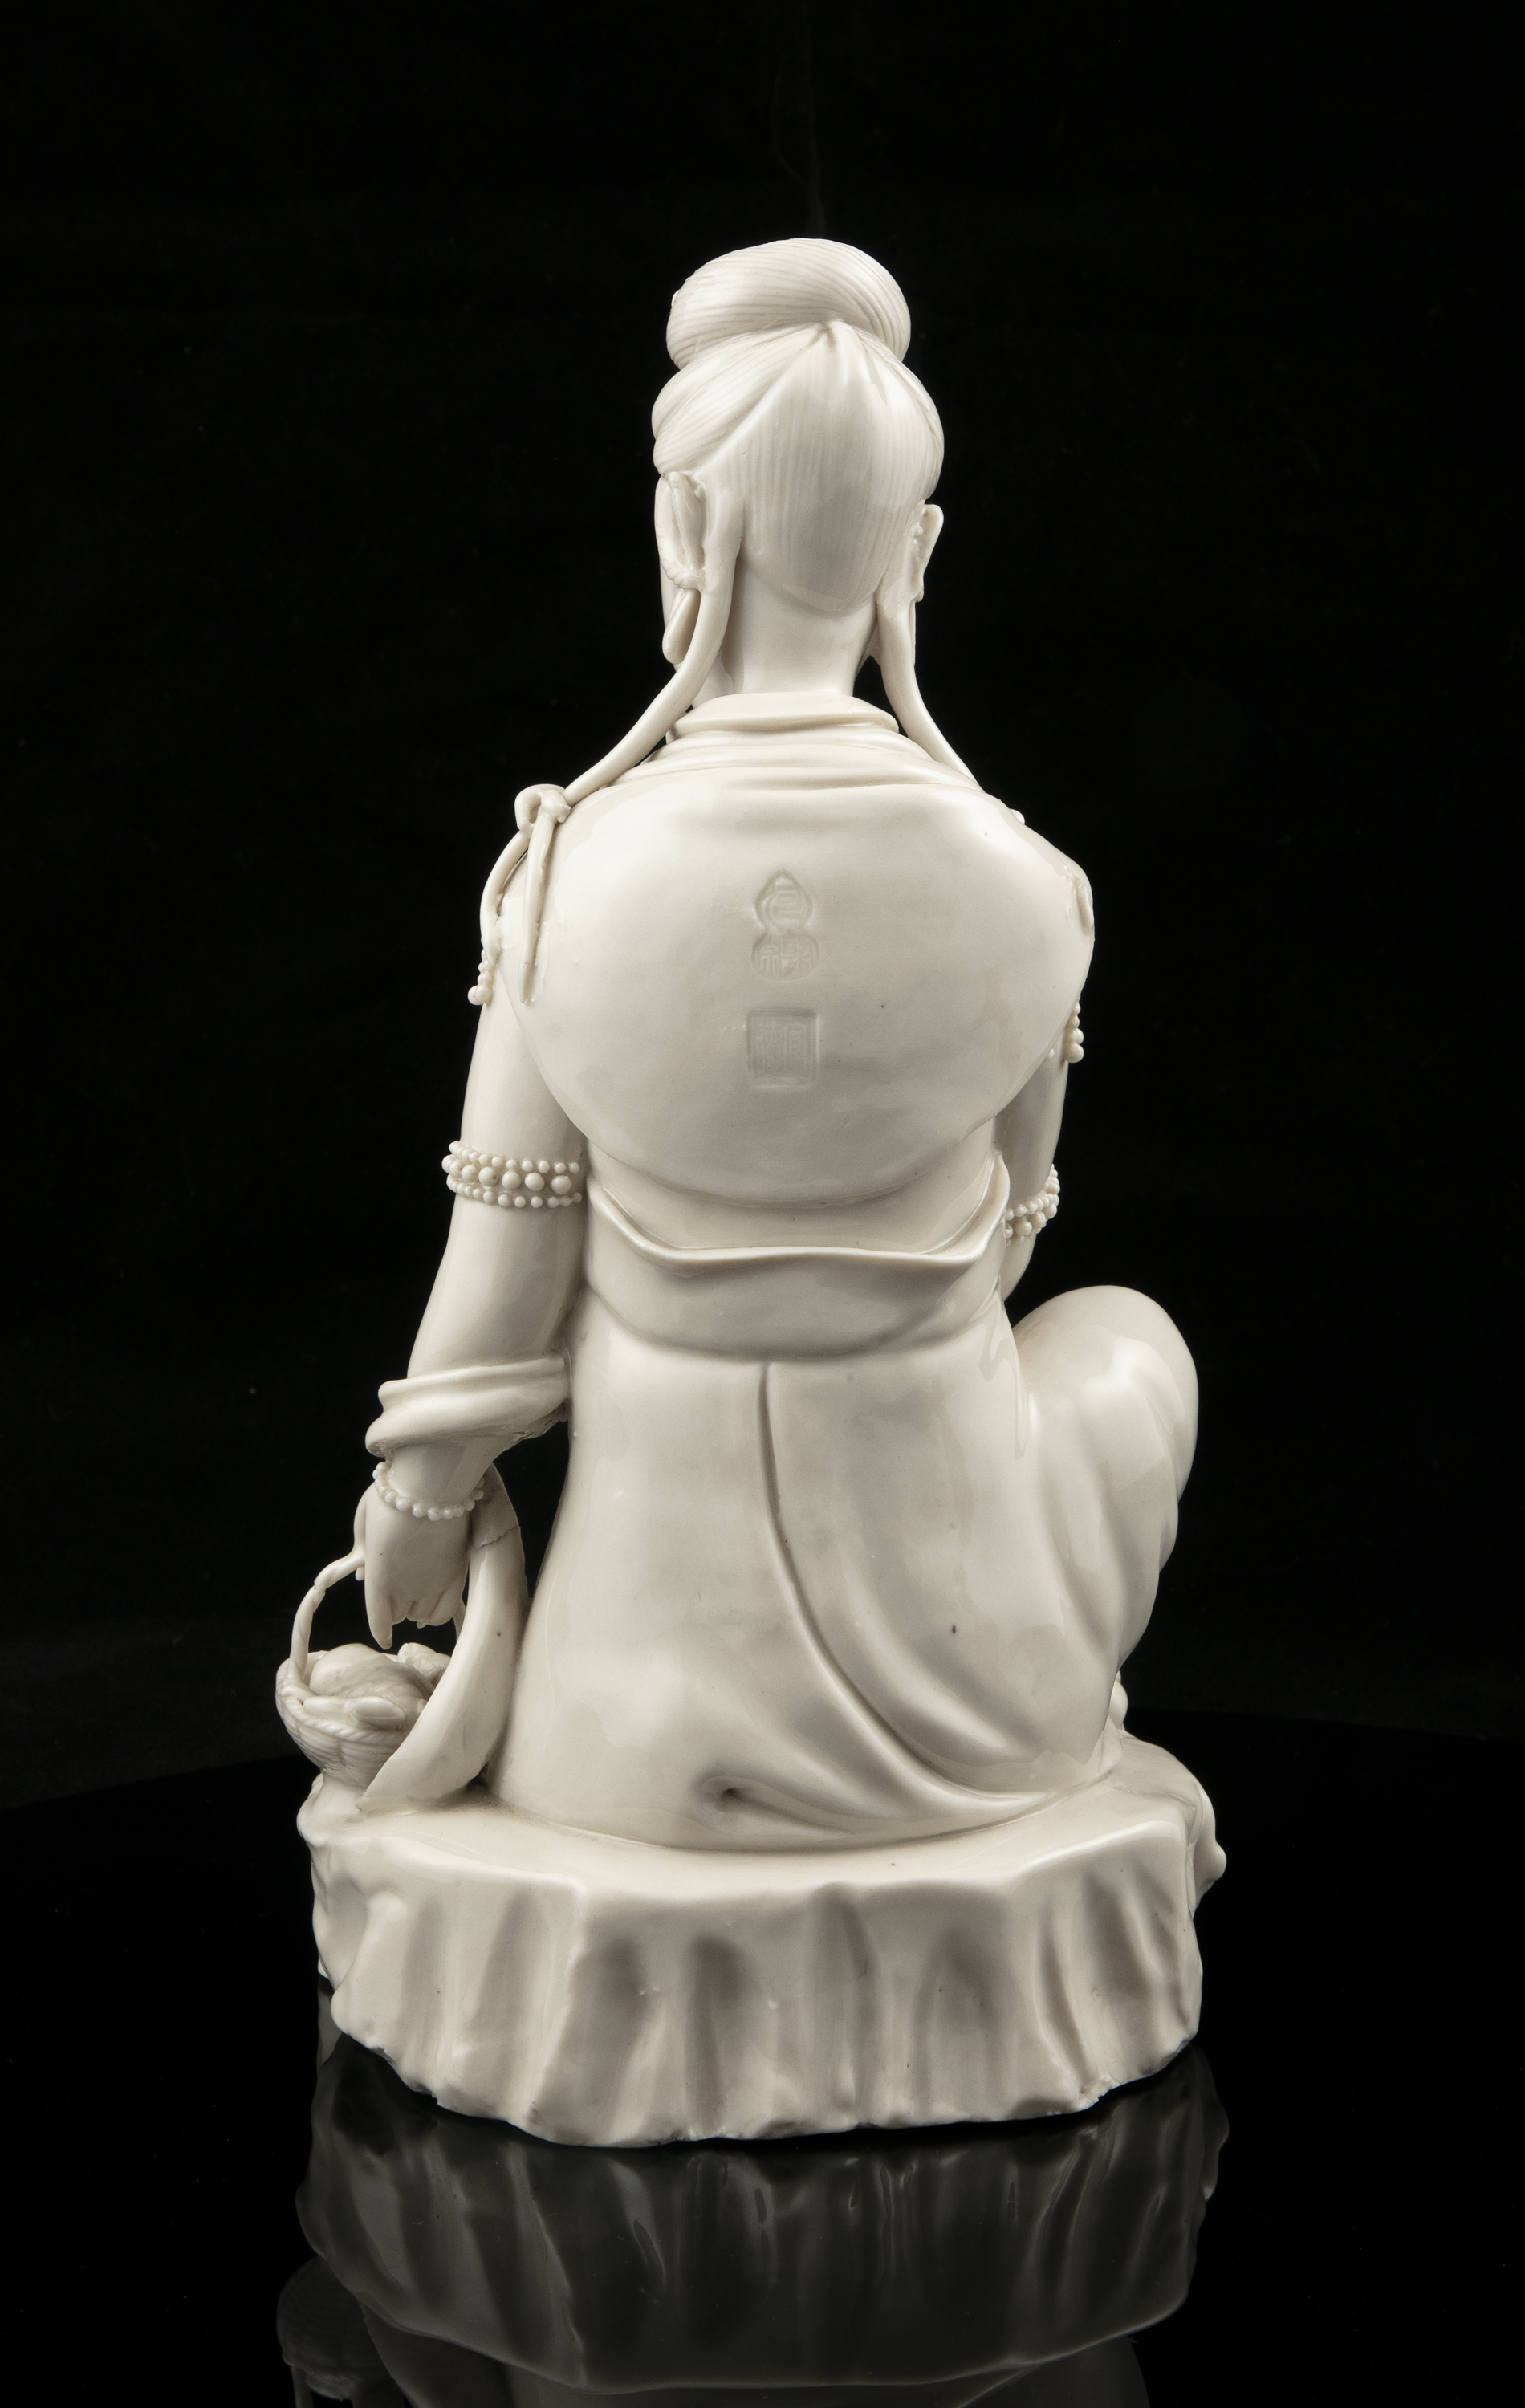 A LARGE DEHUA FIGURE OF A SEATED GUANYIN IMPRESSED WITH A HE CHAOZONG 何朝宗 CALABASH SHAPED SEAL - Image 23 of 48